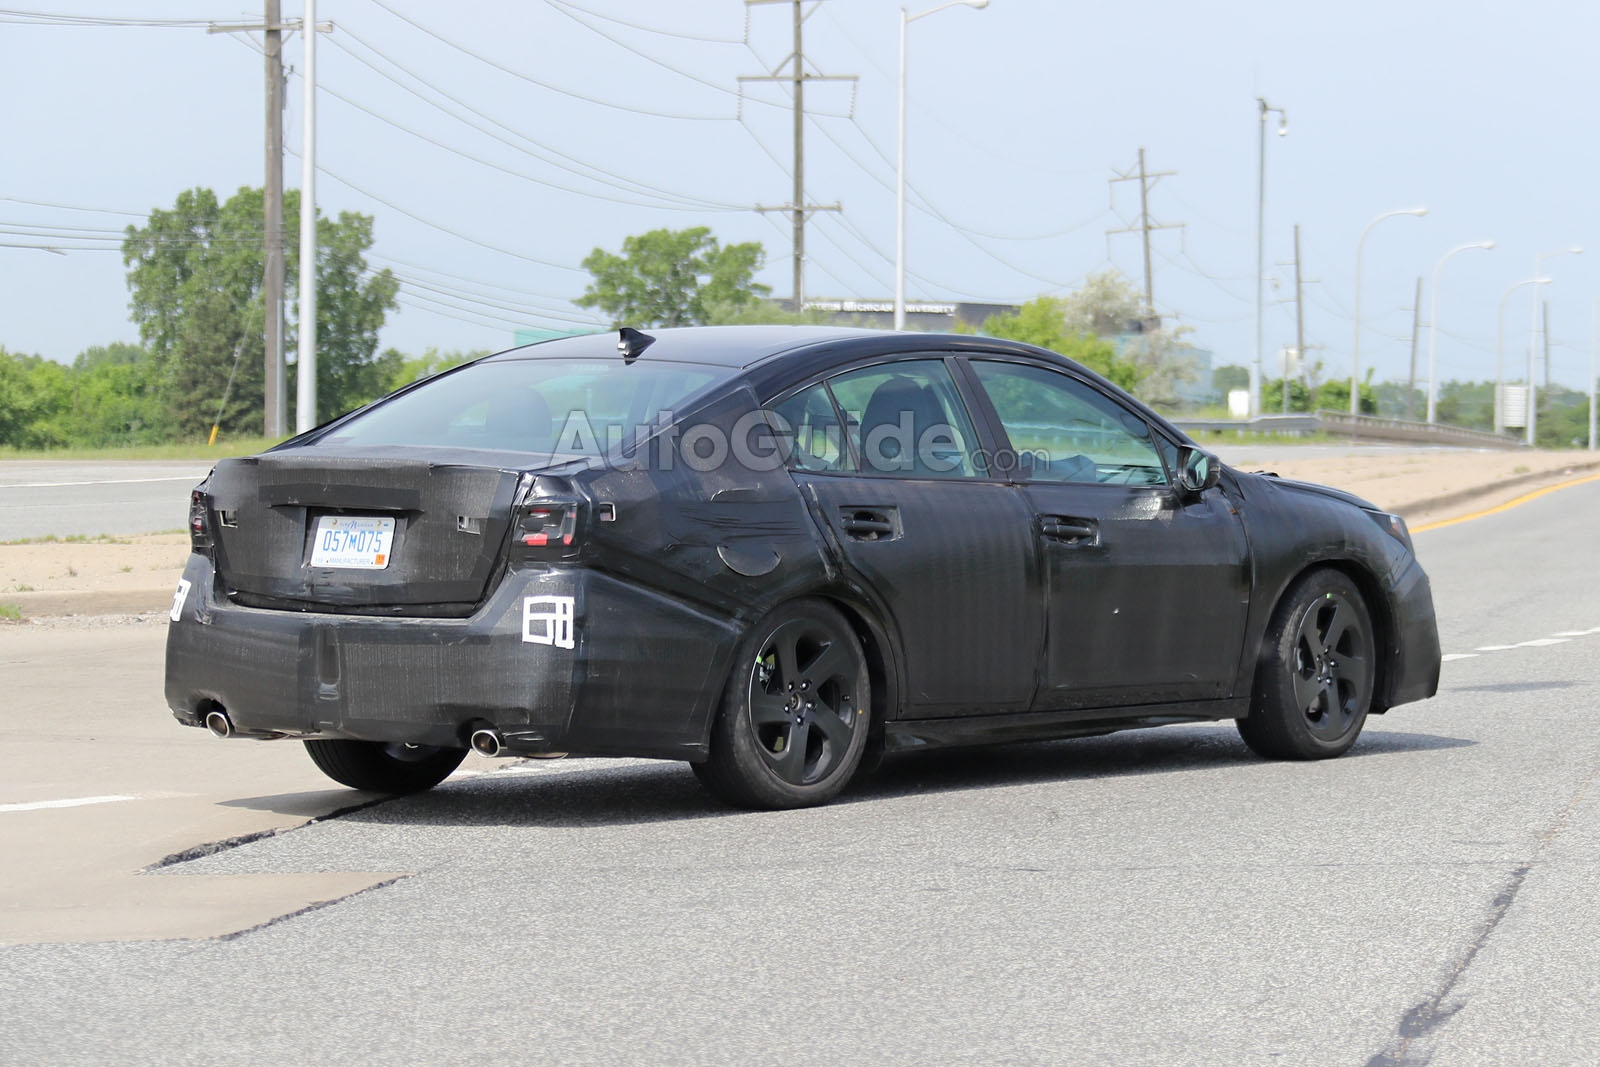 2020 Subaru Legacy Spied Looking More Chiseled 187 Autoguide